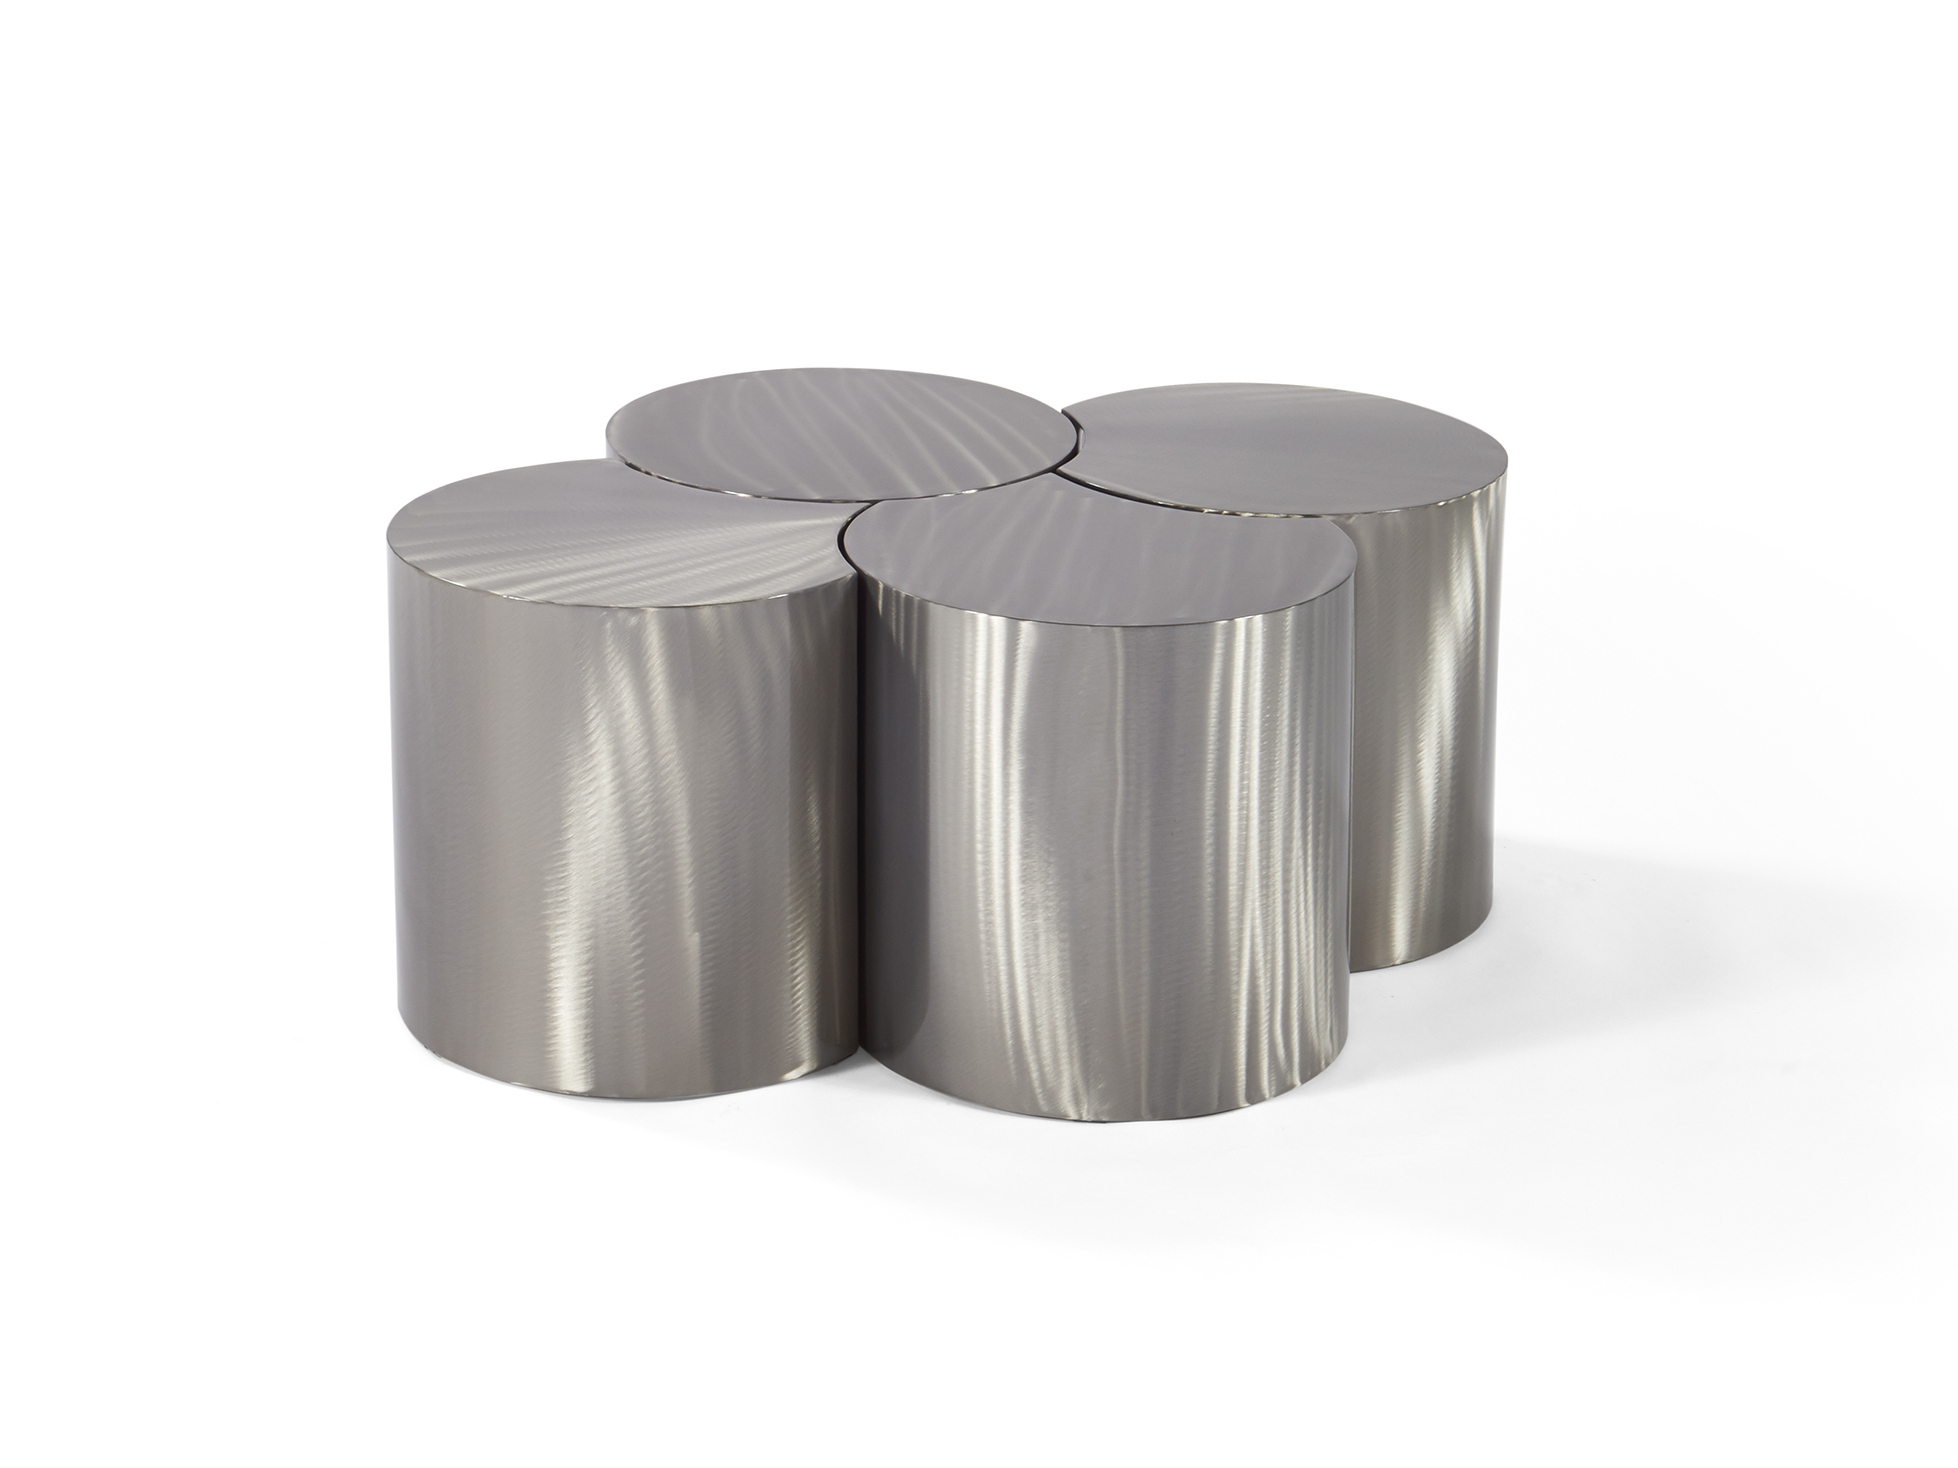 OODLES Nesting Tables